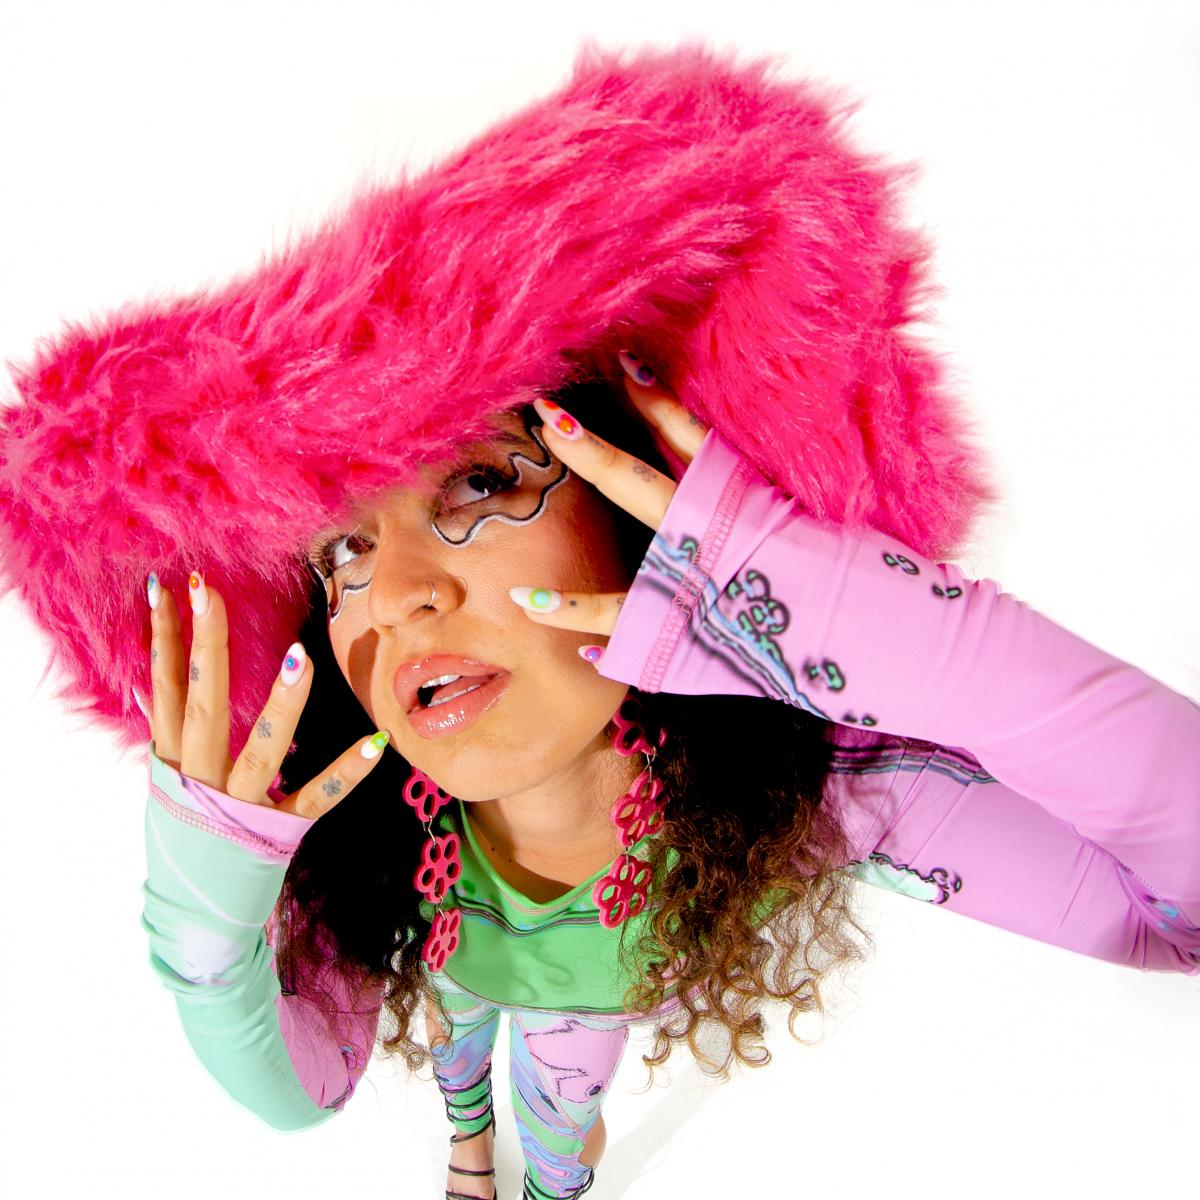 """Remi Wolf, singer behind the viral Tik Tok hit, """"Photo ID,"""" and fan of outrageous hats."""